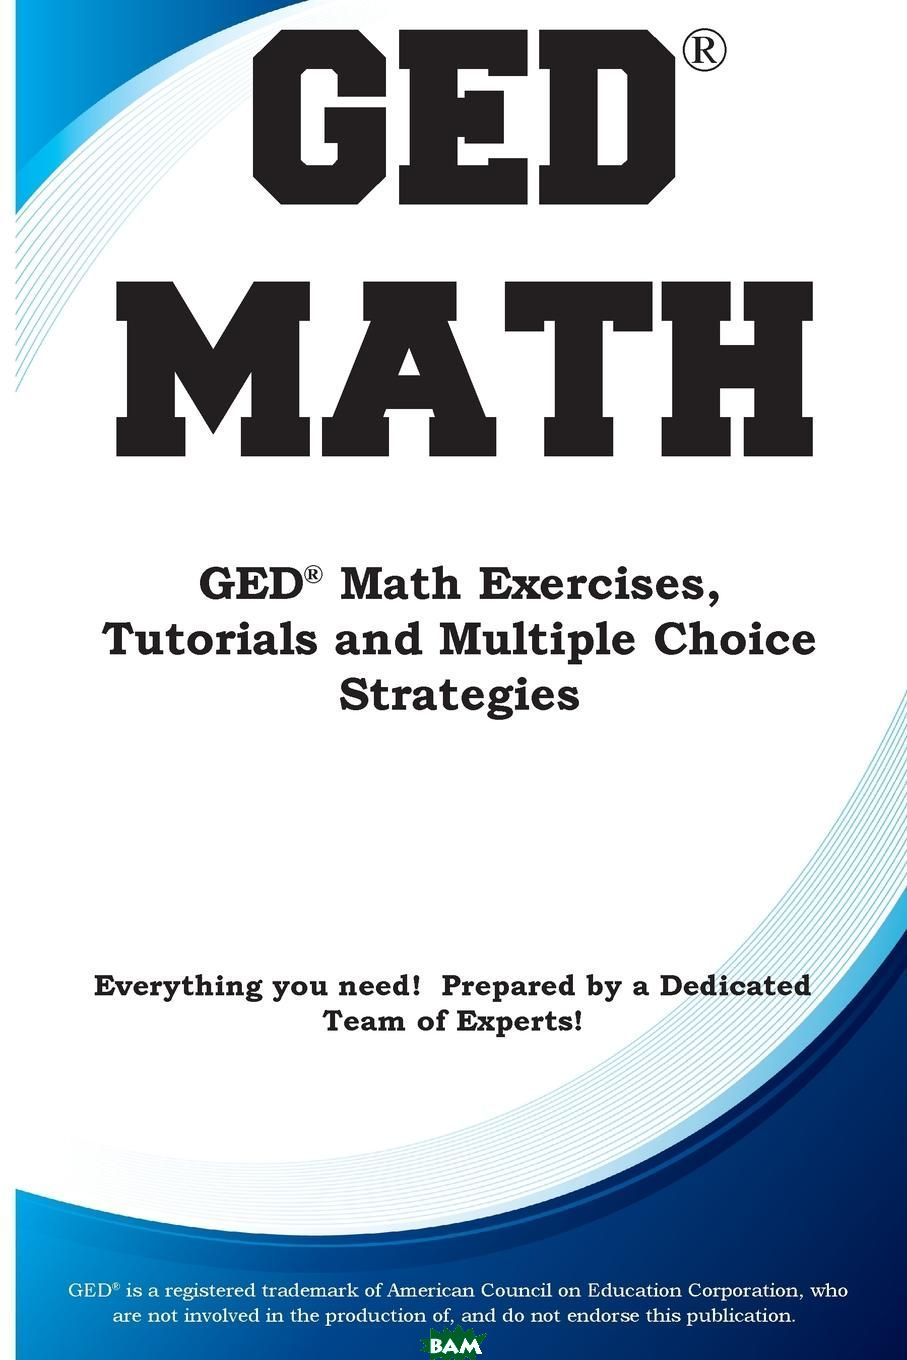 GED Math. Math Exercises, Tutorials and Multiple Choice Strategies